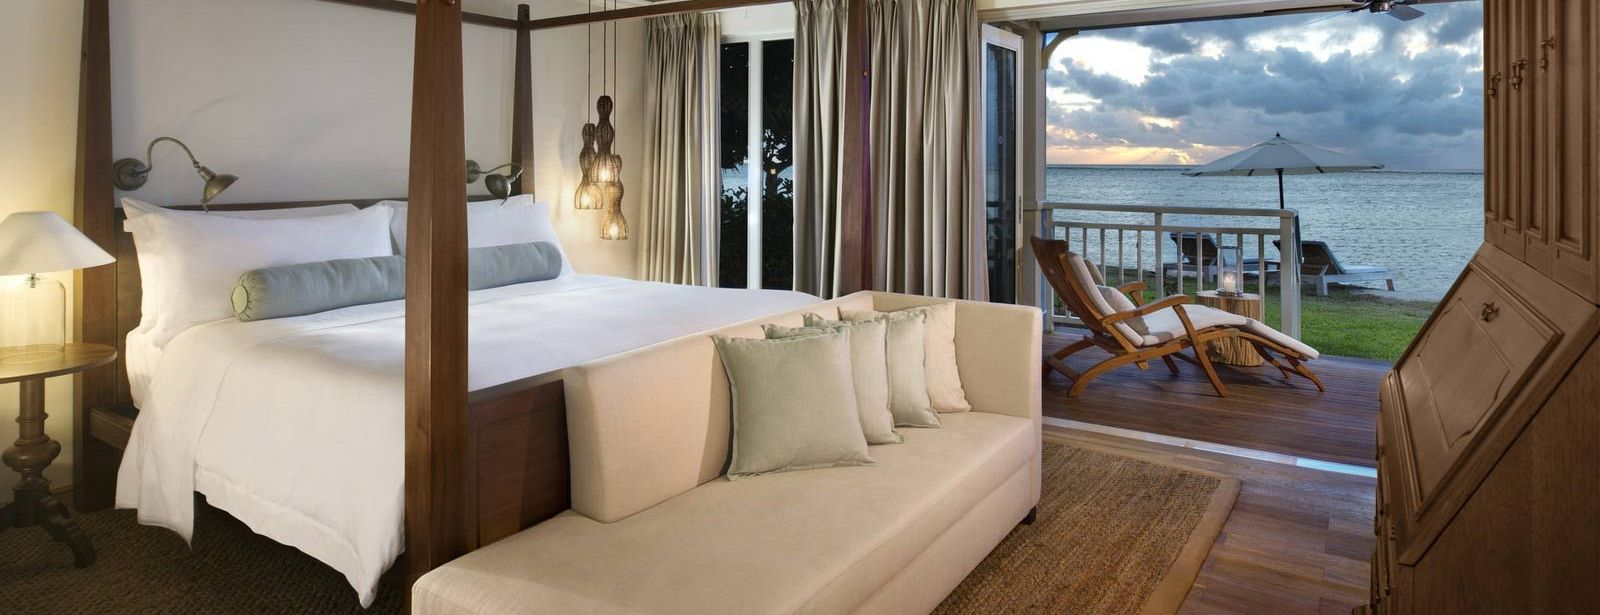 St. Regis Mauritius Beachfront St. Regis Suite with ocean view